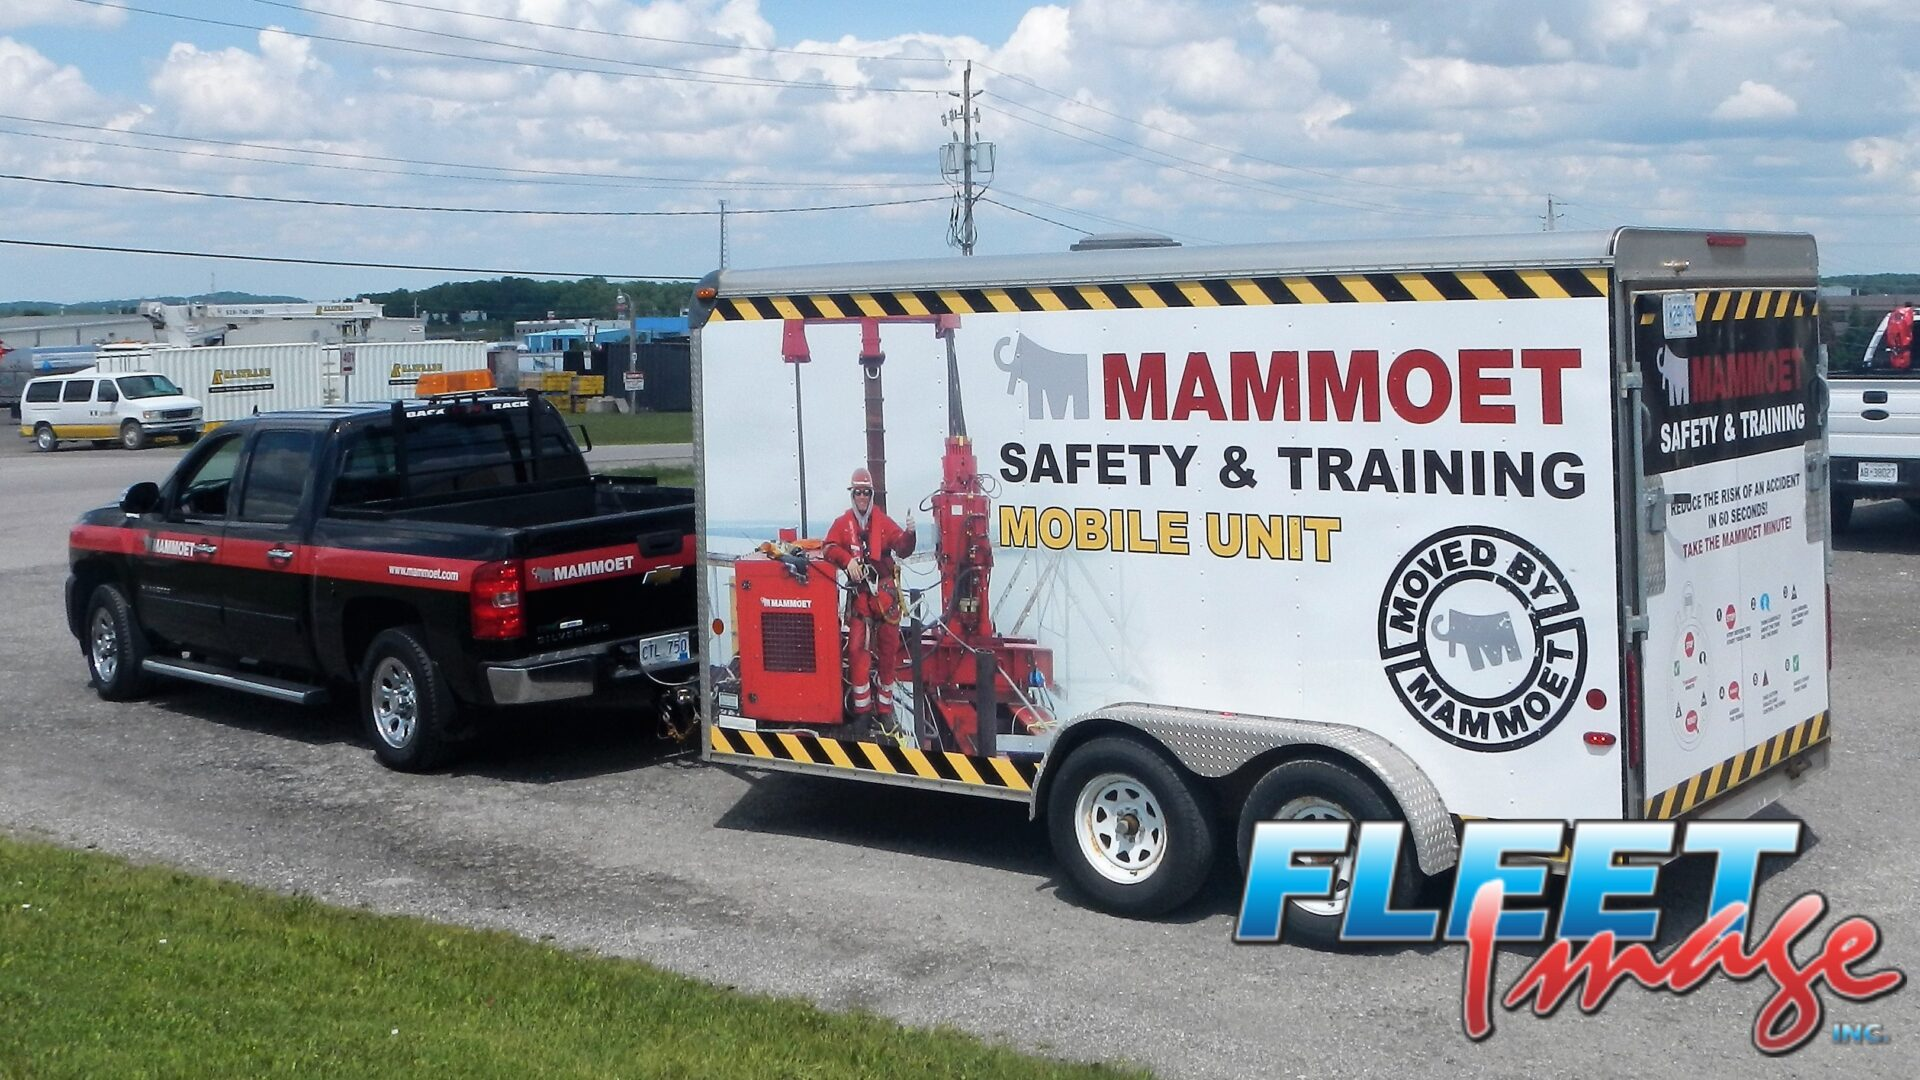 Mammoet Safety & Training Mobile Unit decal sticker on a truck